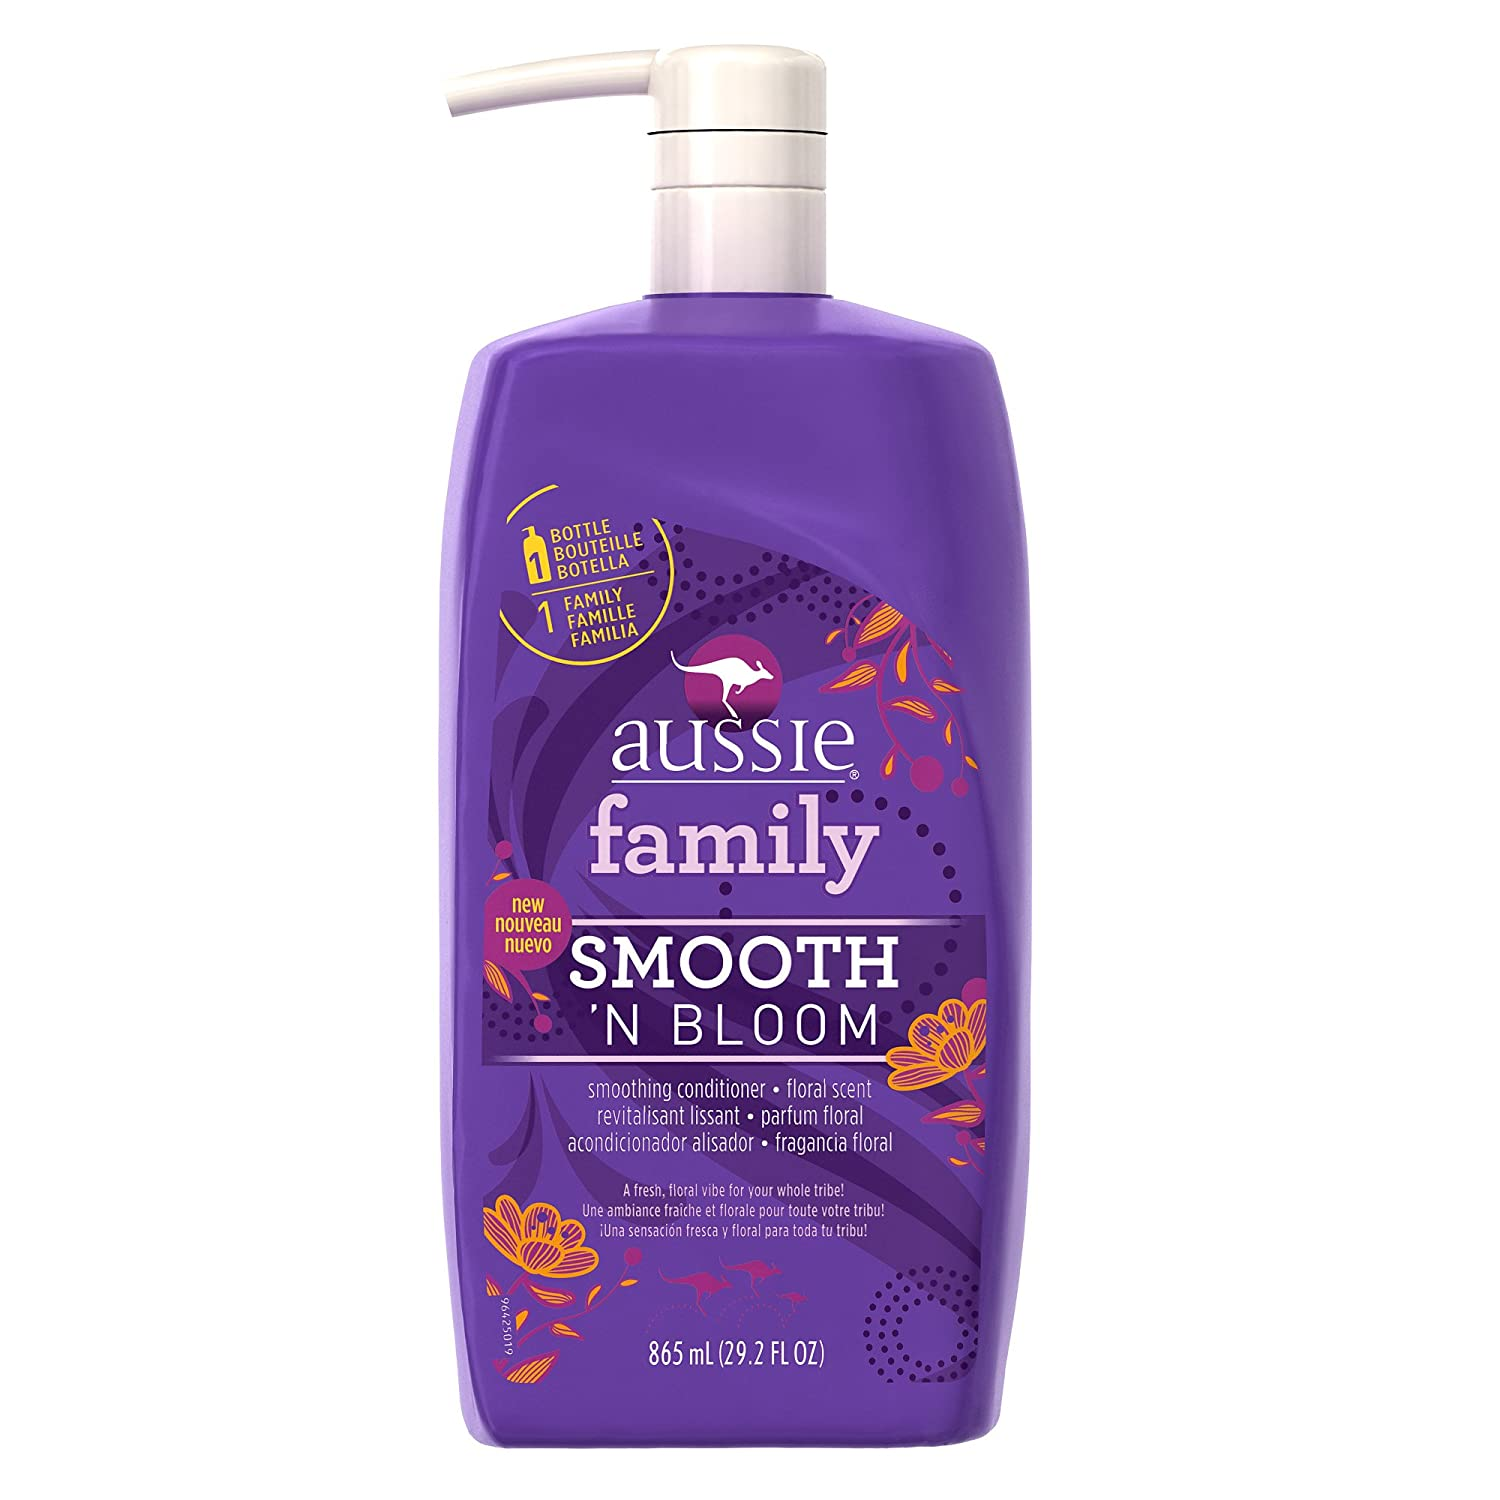 Aussie Smooth 'N Bloom Smoothing Conditioner 29.2 Fl Oz